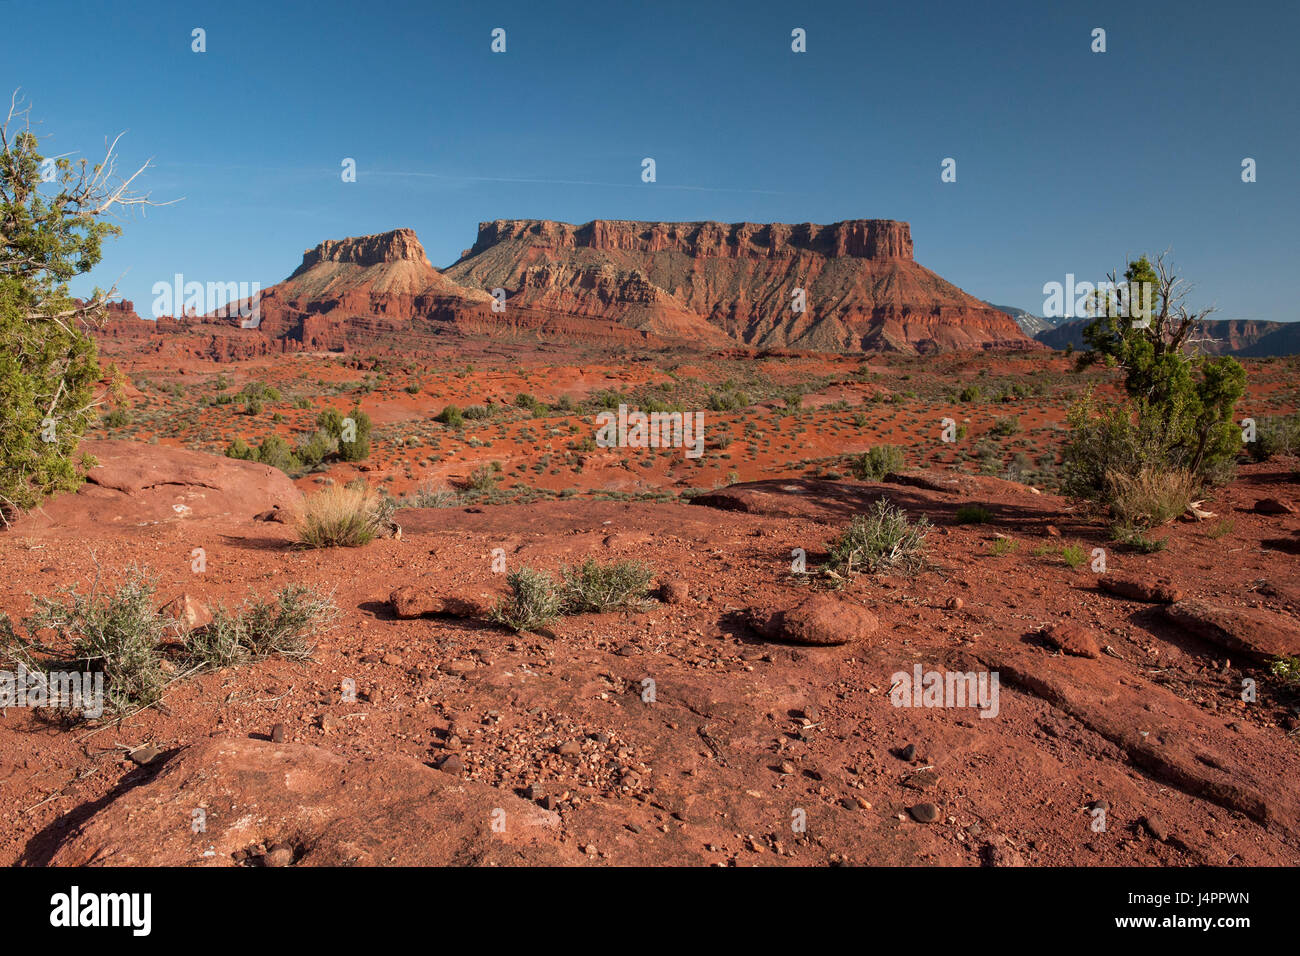 Fisher Mesa, about 20 miles east of Moab, Utah. - Stock Image